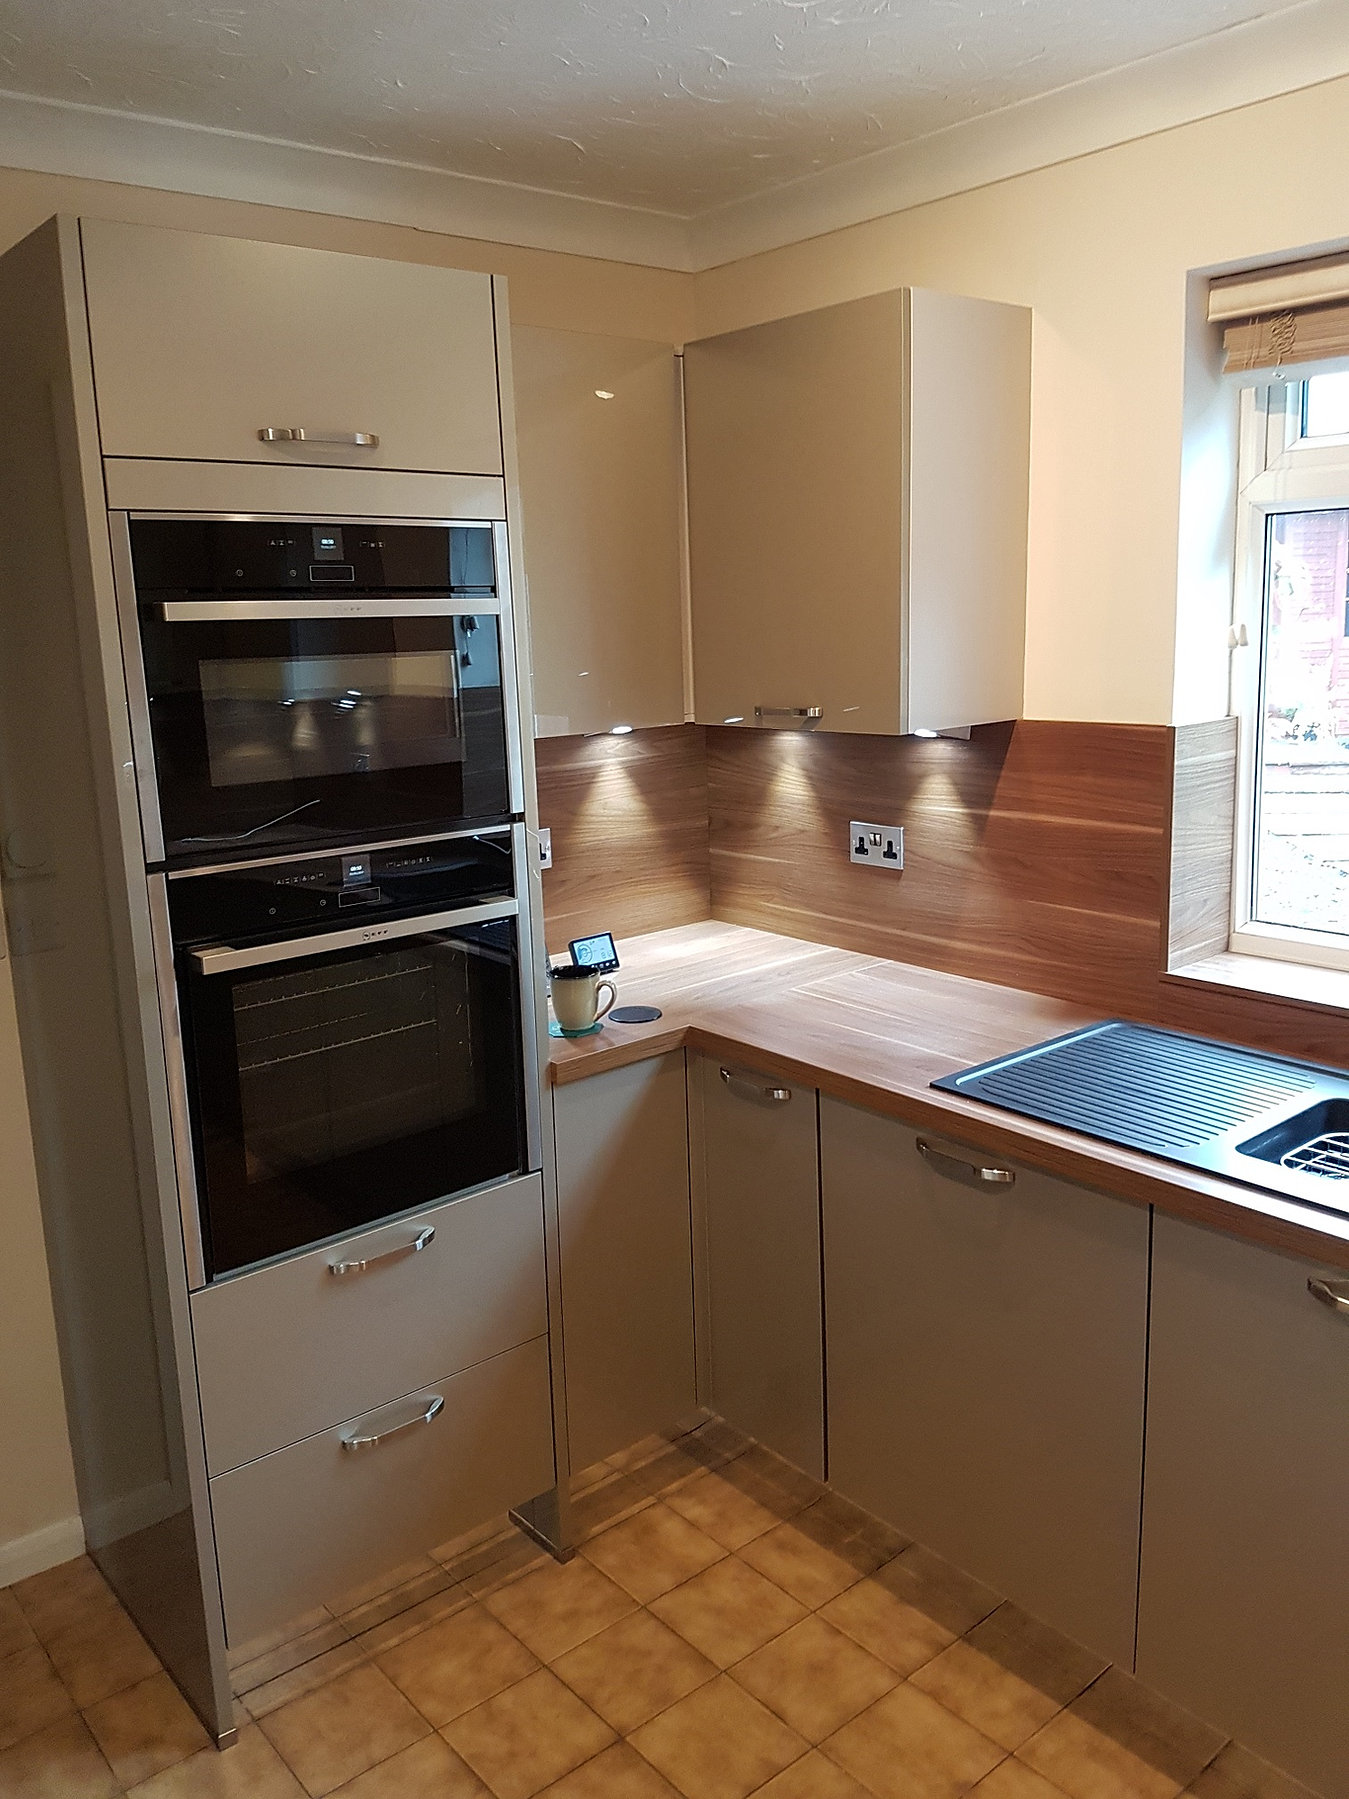 Kitchens and bathrooms direct - Kitchen Fitting In Norfolk